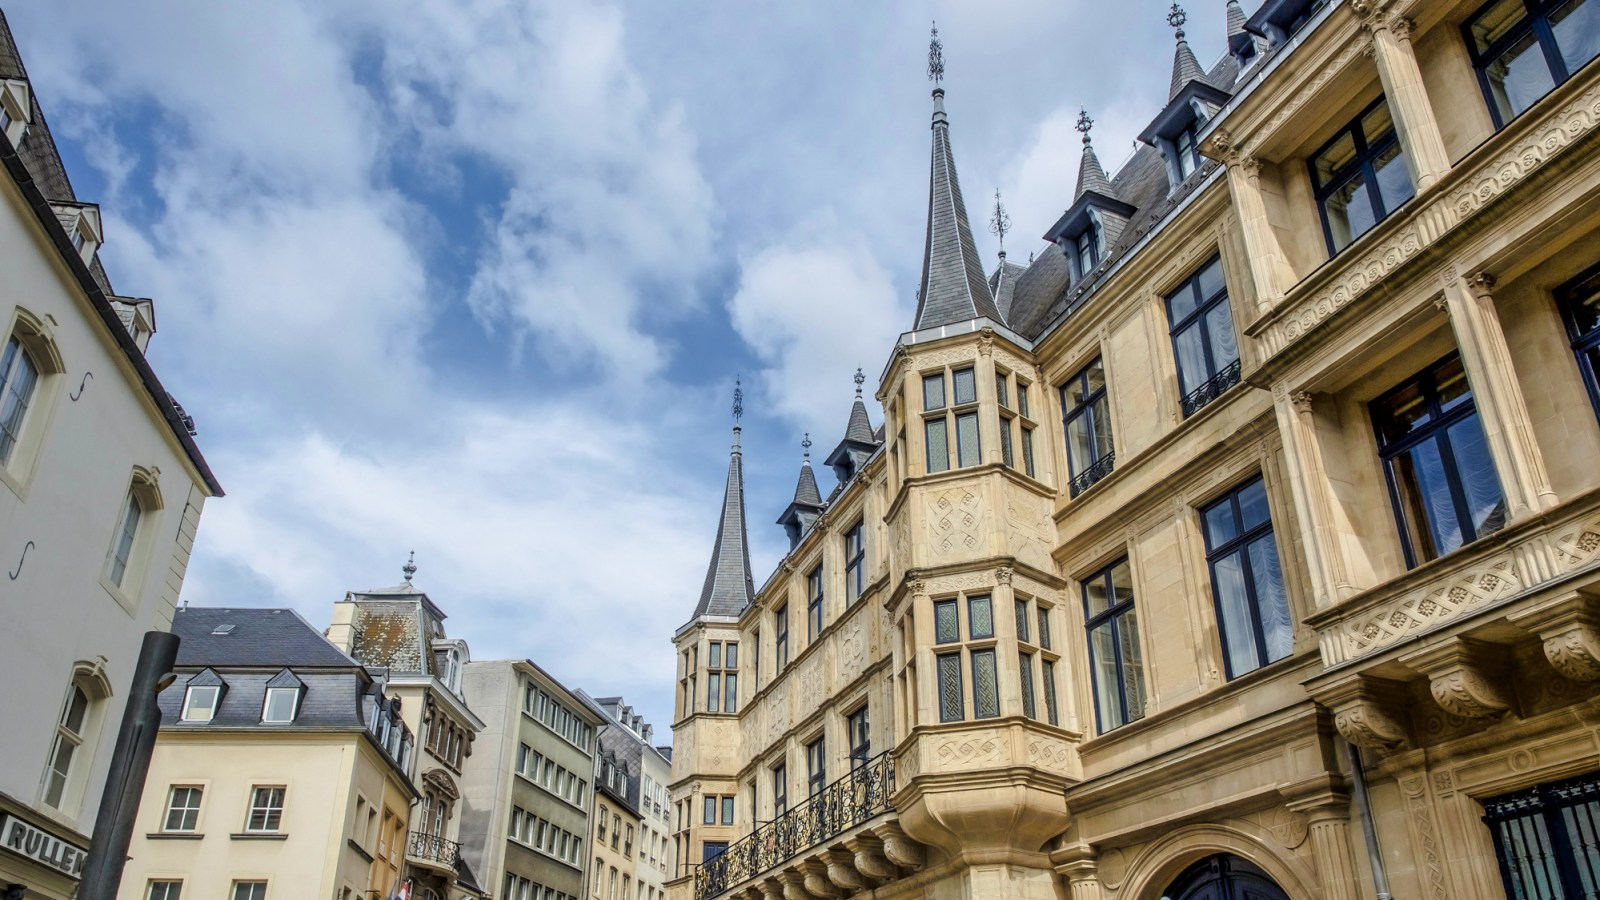 Day Trip to Luxembourg | Should you take one or not? | What to see in Luxembourg | What to do in Luxembourg | Day trip to Luxembourg from Brussels, Belgium | Luxembourg City